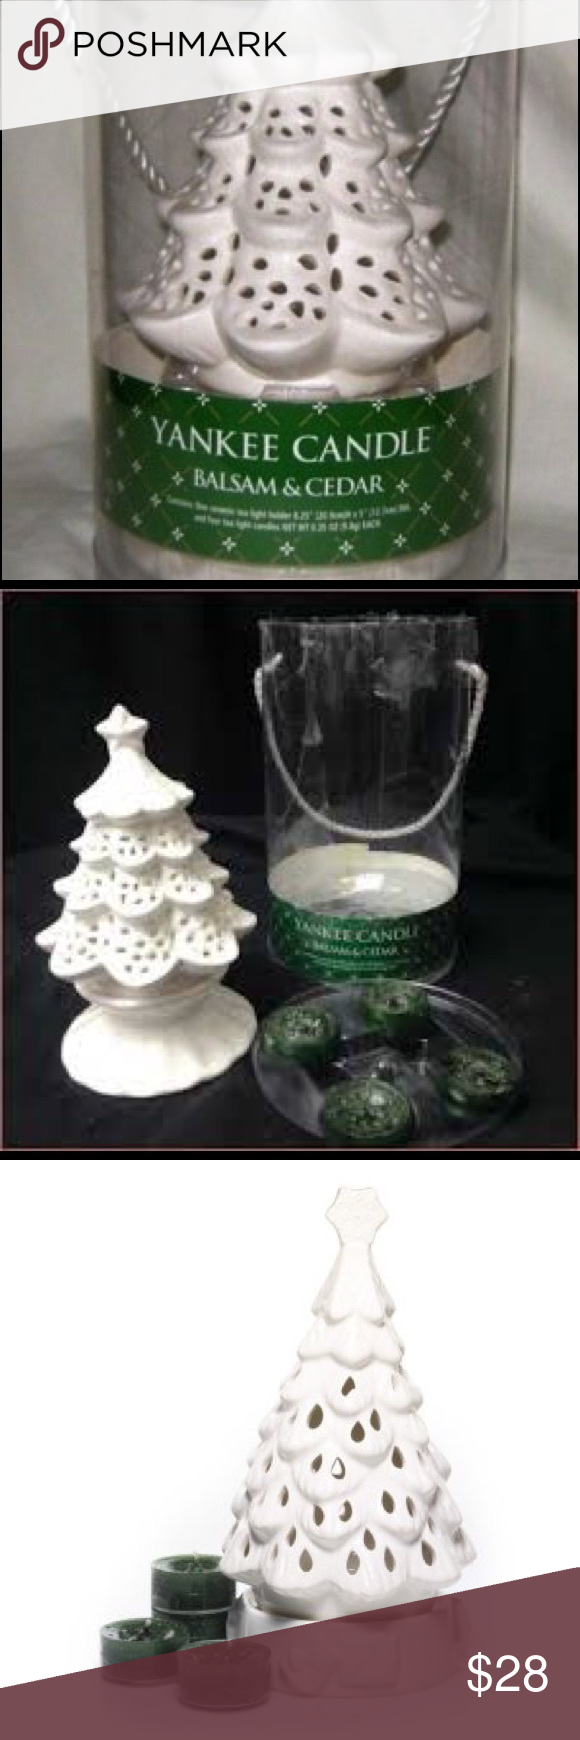 CHRISTMAS YANKEE CANDLE WHITE TREE CANDLE HOLDER WITH 4 BALSAM SCENTED TEALIGHTS